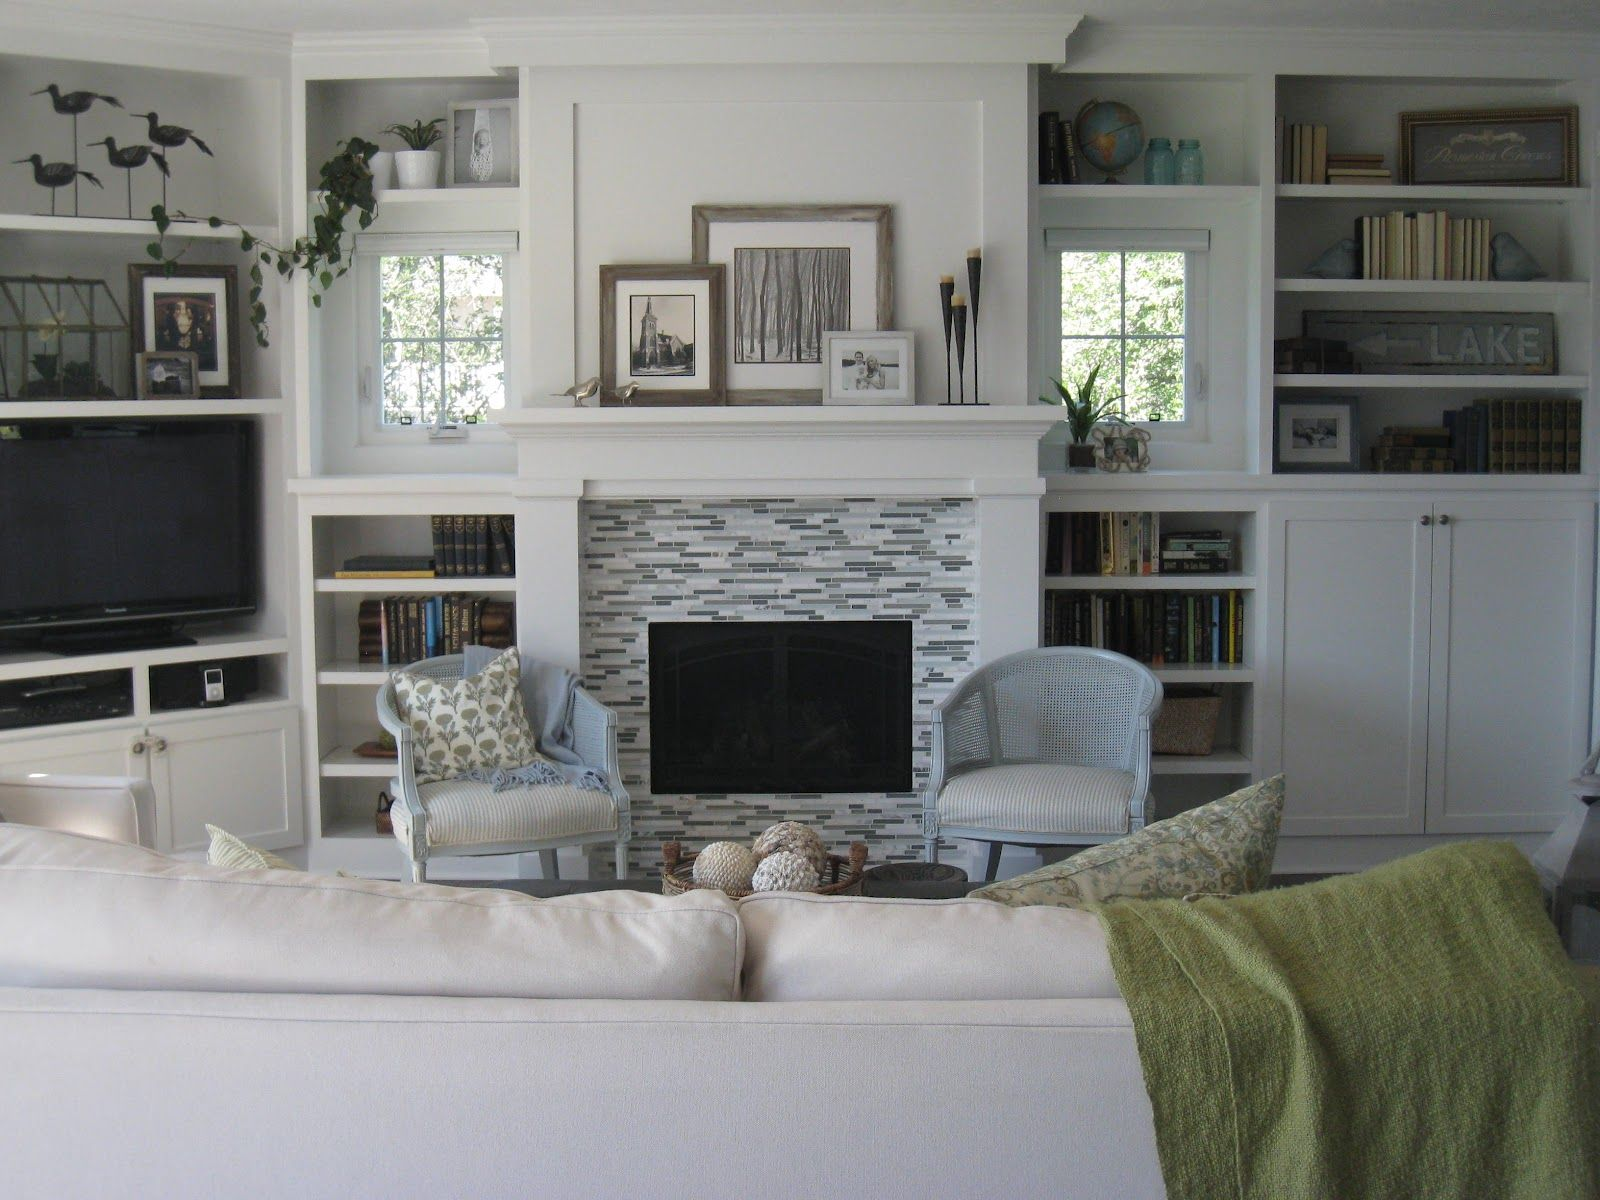 Living Room Built Ins Craftsmanstyle Fireplace With Builtins That Don't Have To Match